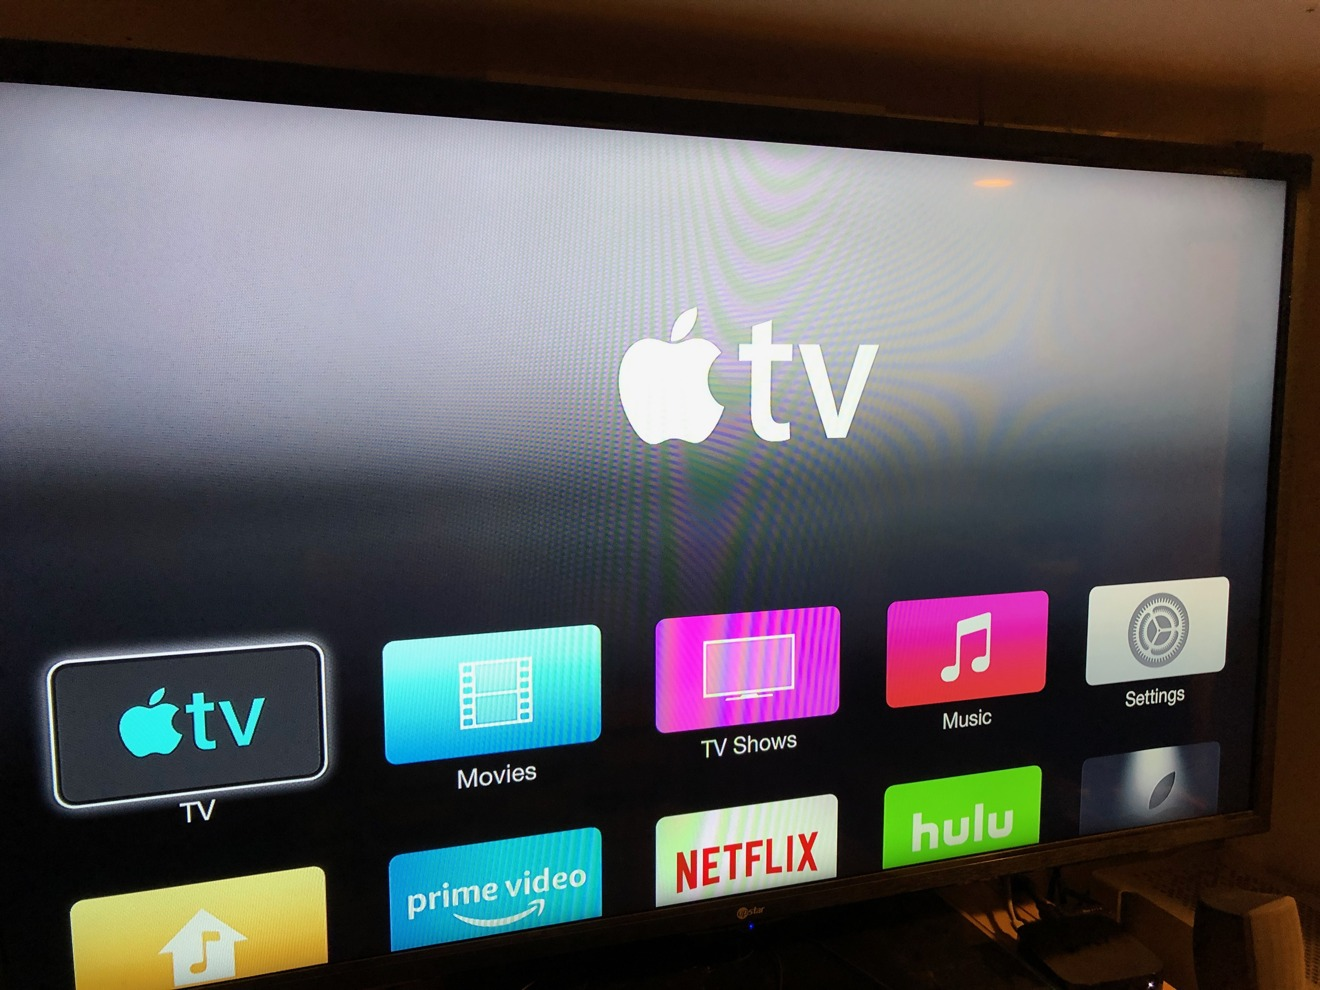 The new TV App is coming to third generation Apple TV hardware